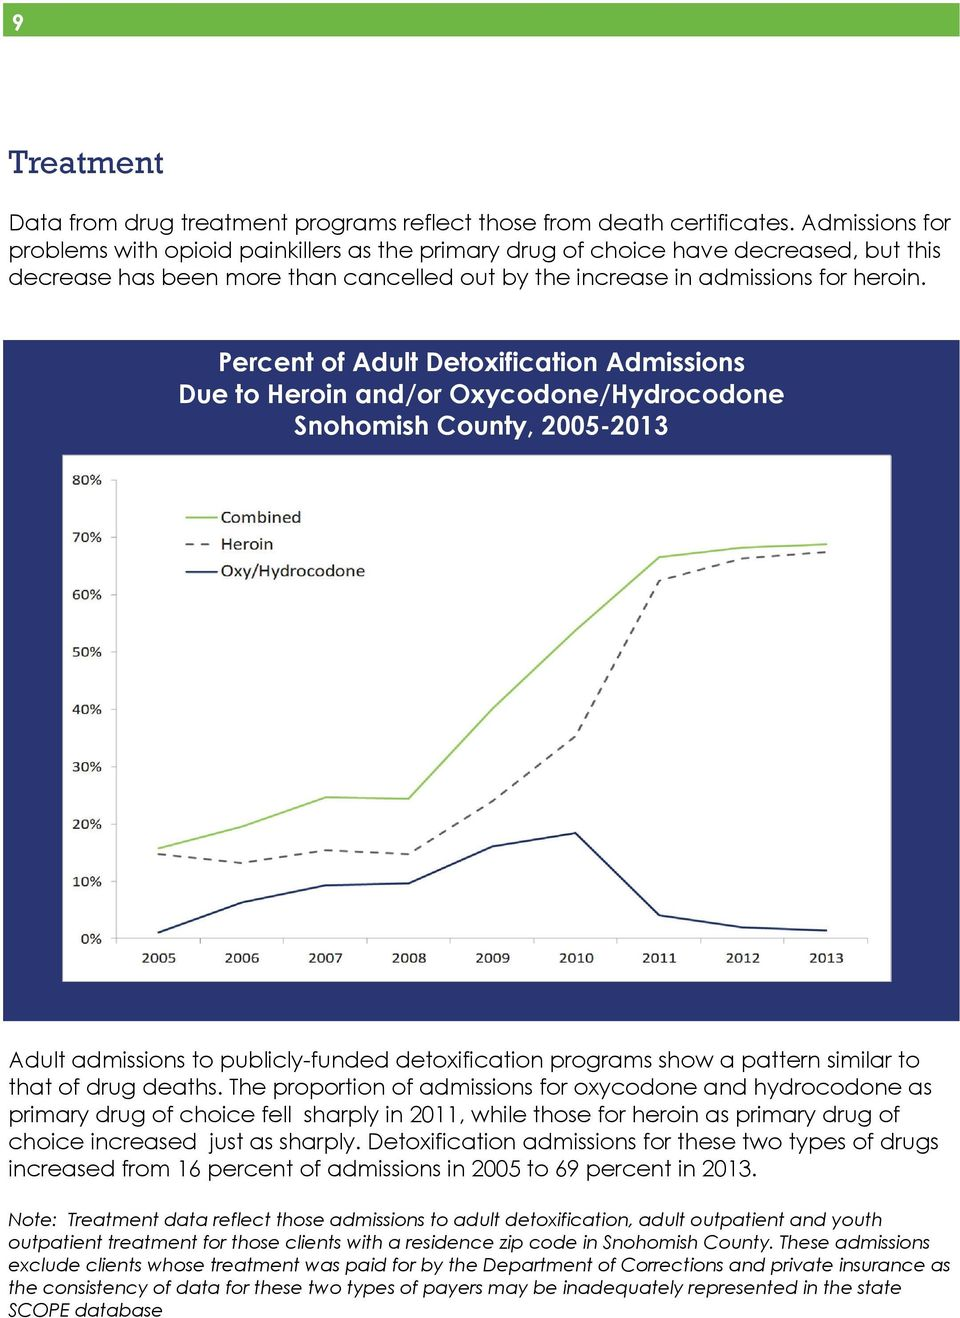 Percent of Adult Detoxification Admissions Due to Heroin and/or Oxycodone/Hydrocodone Snohomish County, 2005-2013 Adult admissions to publicly-funded detoxification programs show a pattern similar to